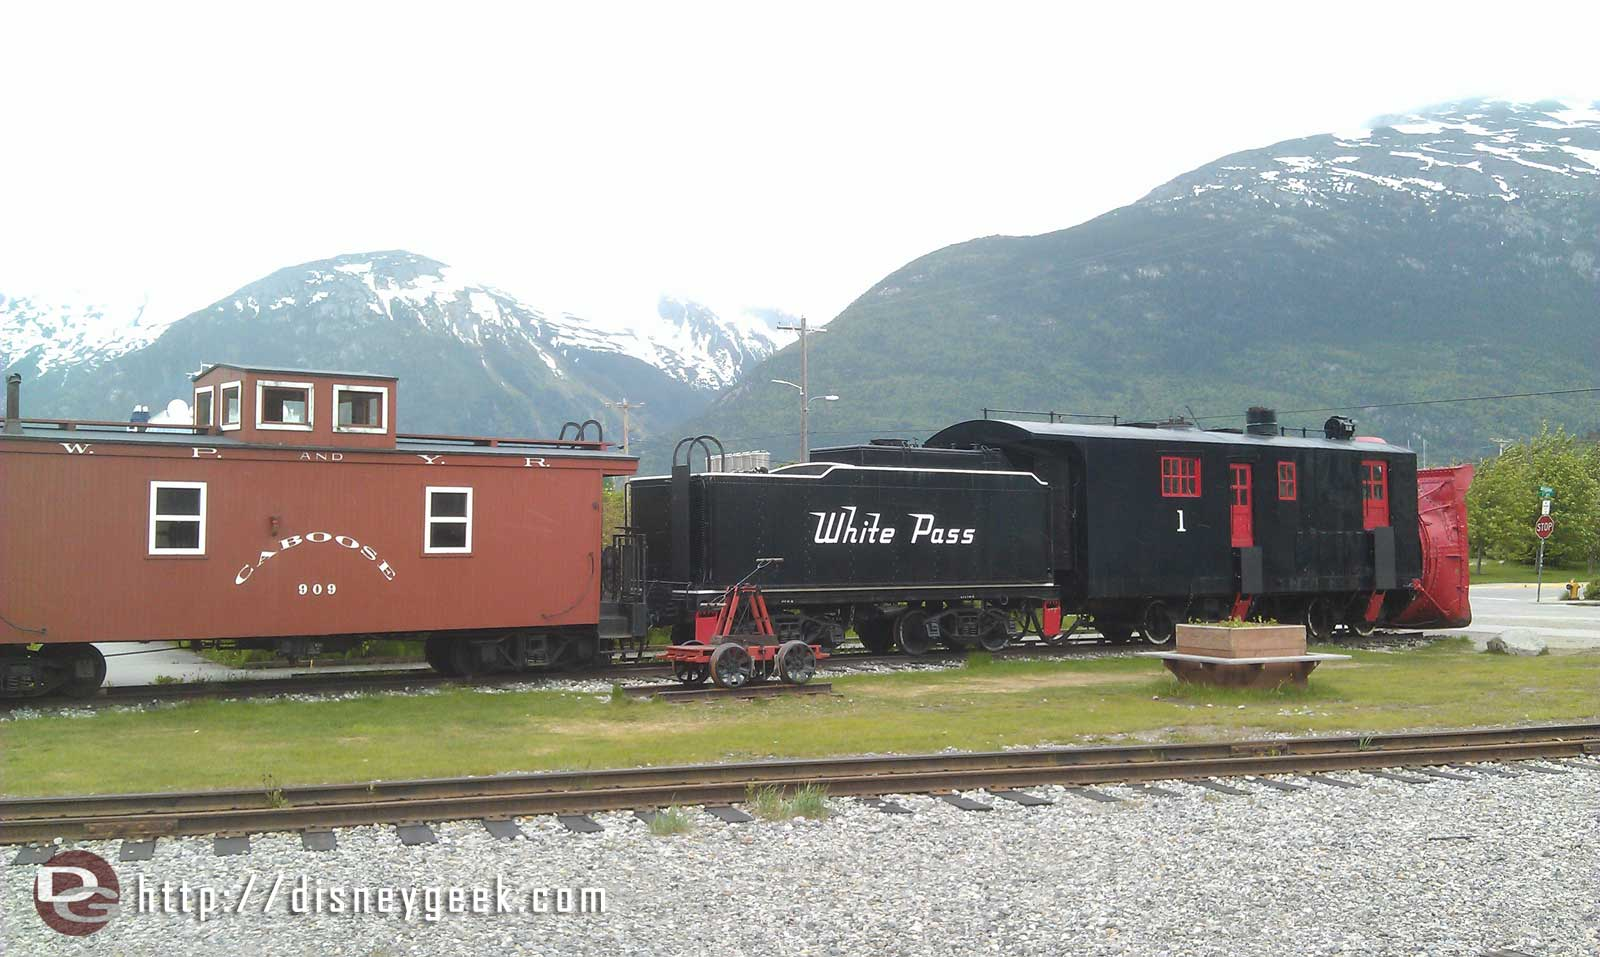 A train on display in Skagway #Alaska